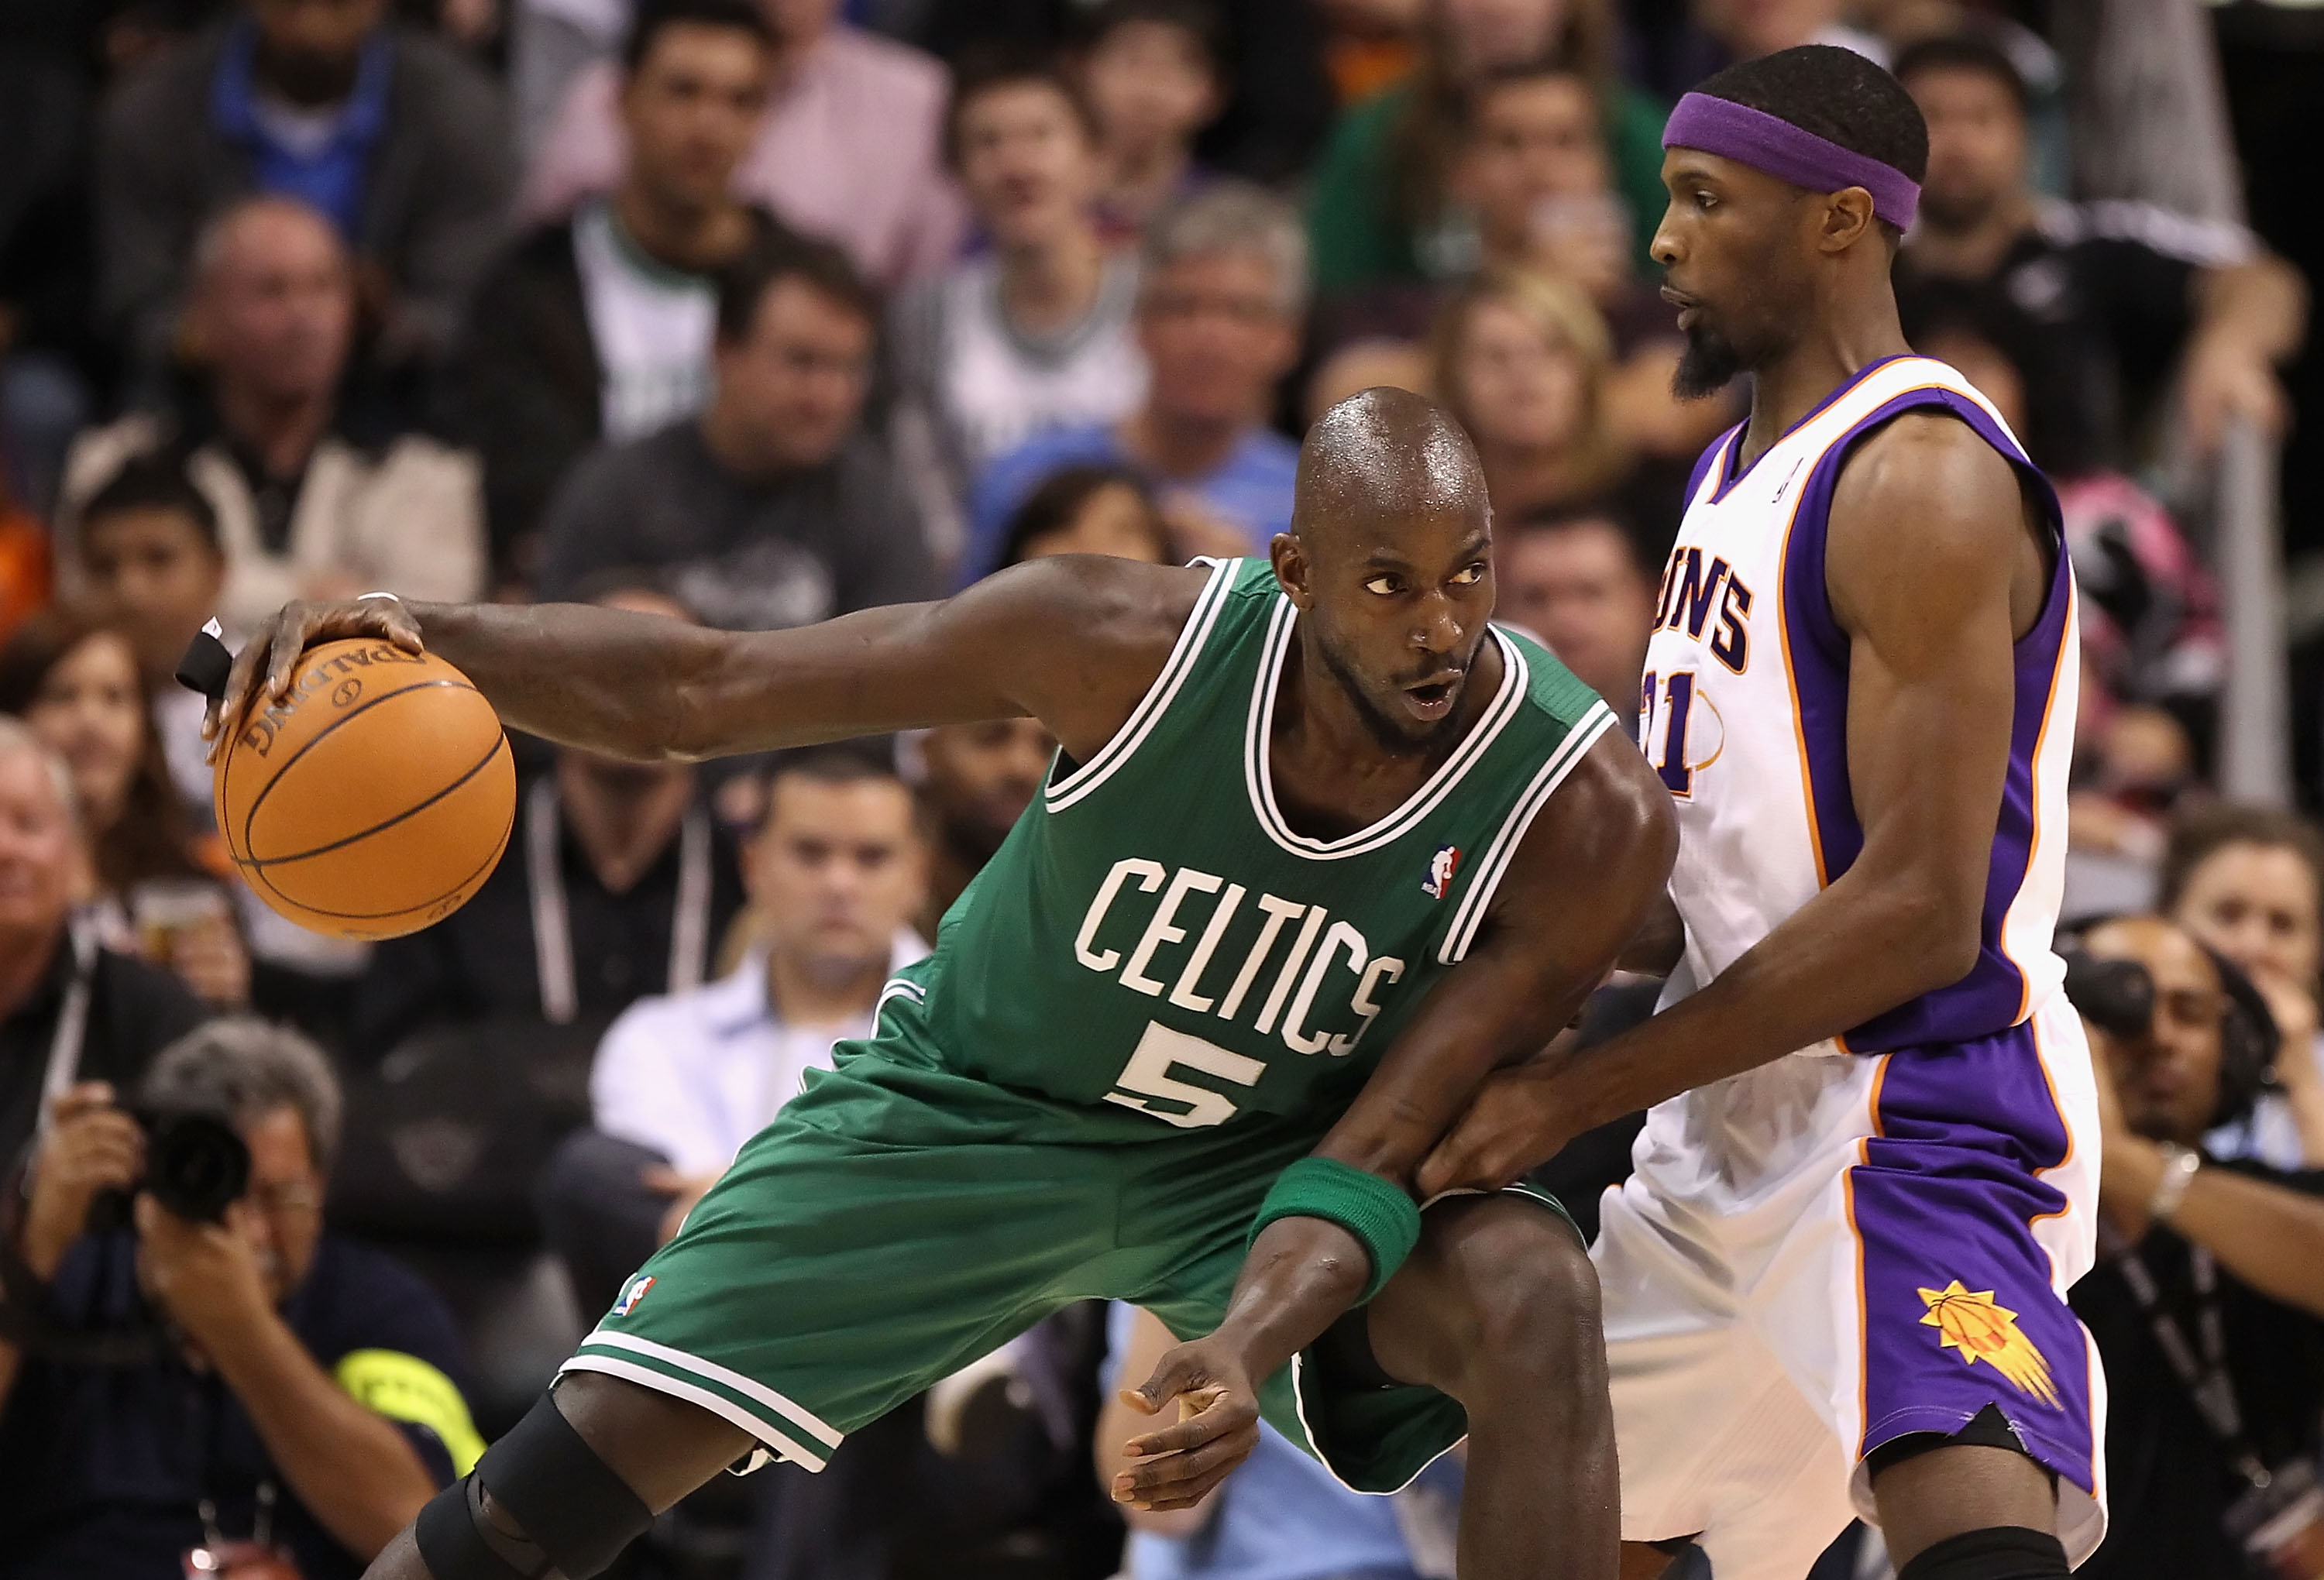 PHOENIX, AZ - JANUARY 28:  Kevin Garnett #5 of the Boston Celtics handles the ball guarded by Hakim Warrick #21 of the Phoenix Suns during the NBA game at US Airways Center on January 28, 2011 in Phoenix, Arizona.  The Suns defeated the Celtics 88-71.  NO